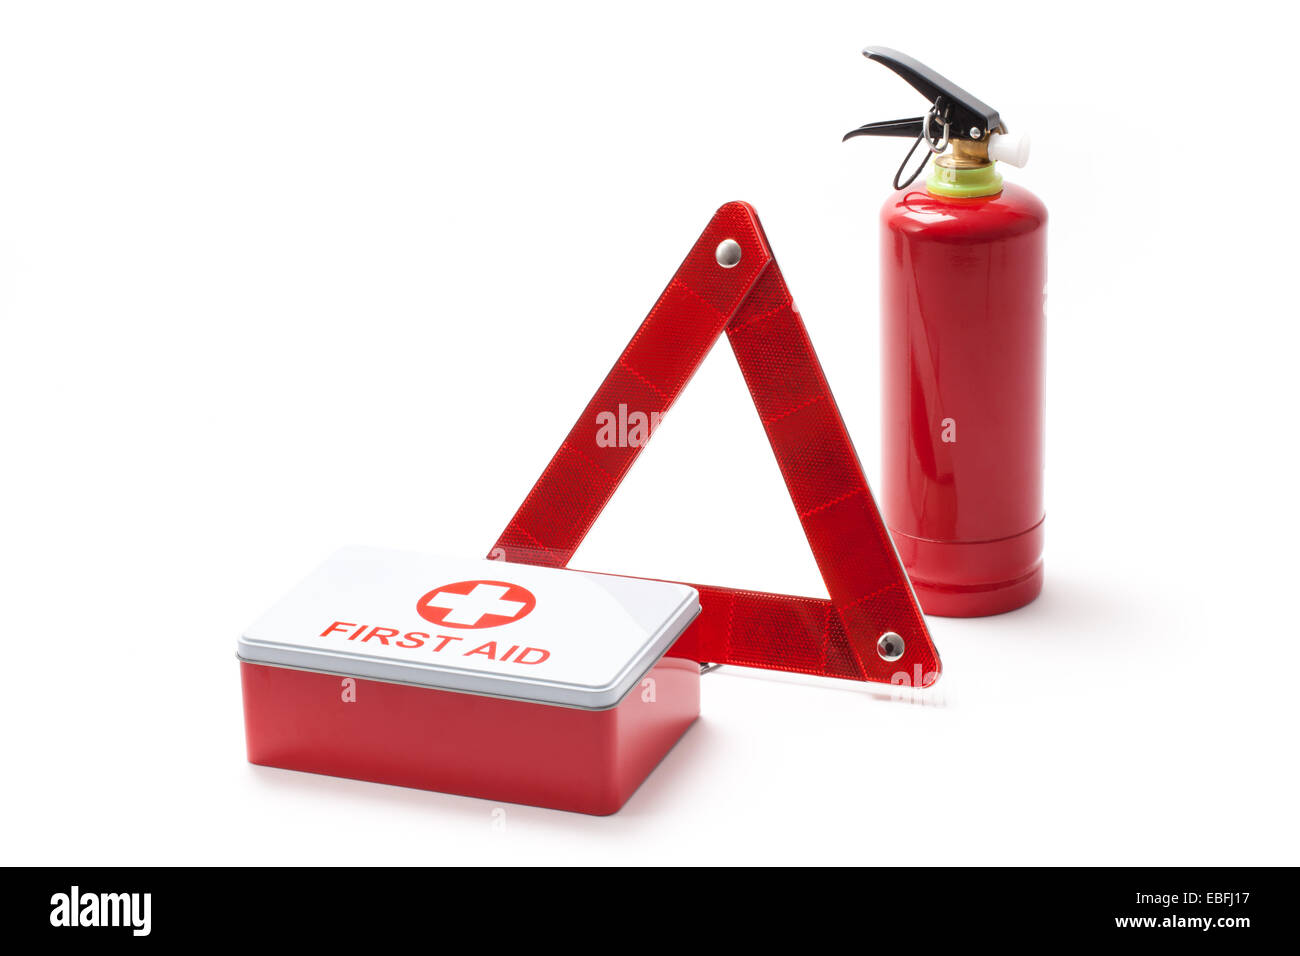 Car equipment - triangle, extinguisher and first aid kit. - Stock Image